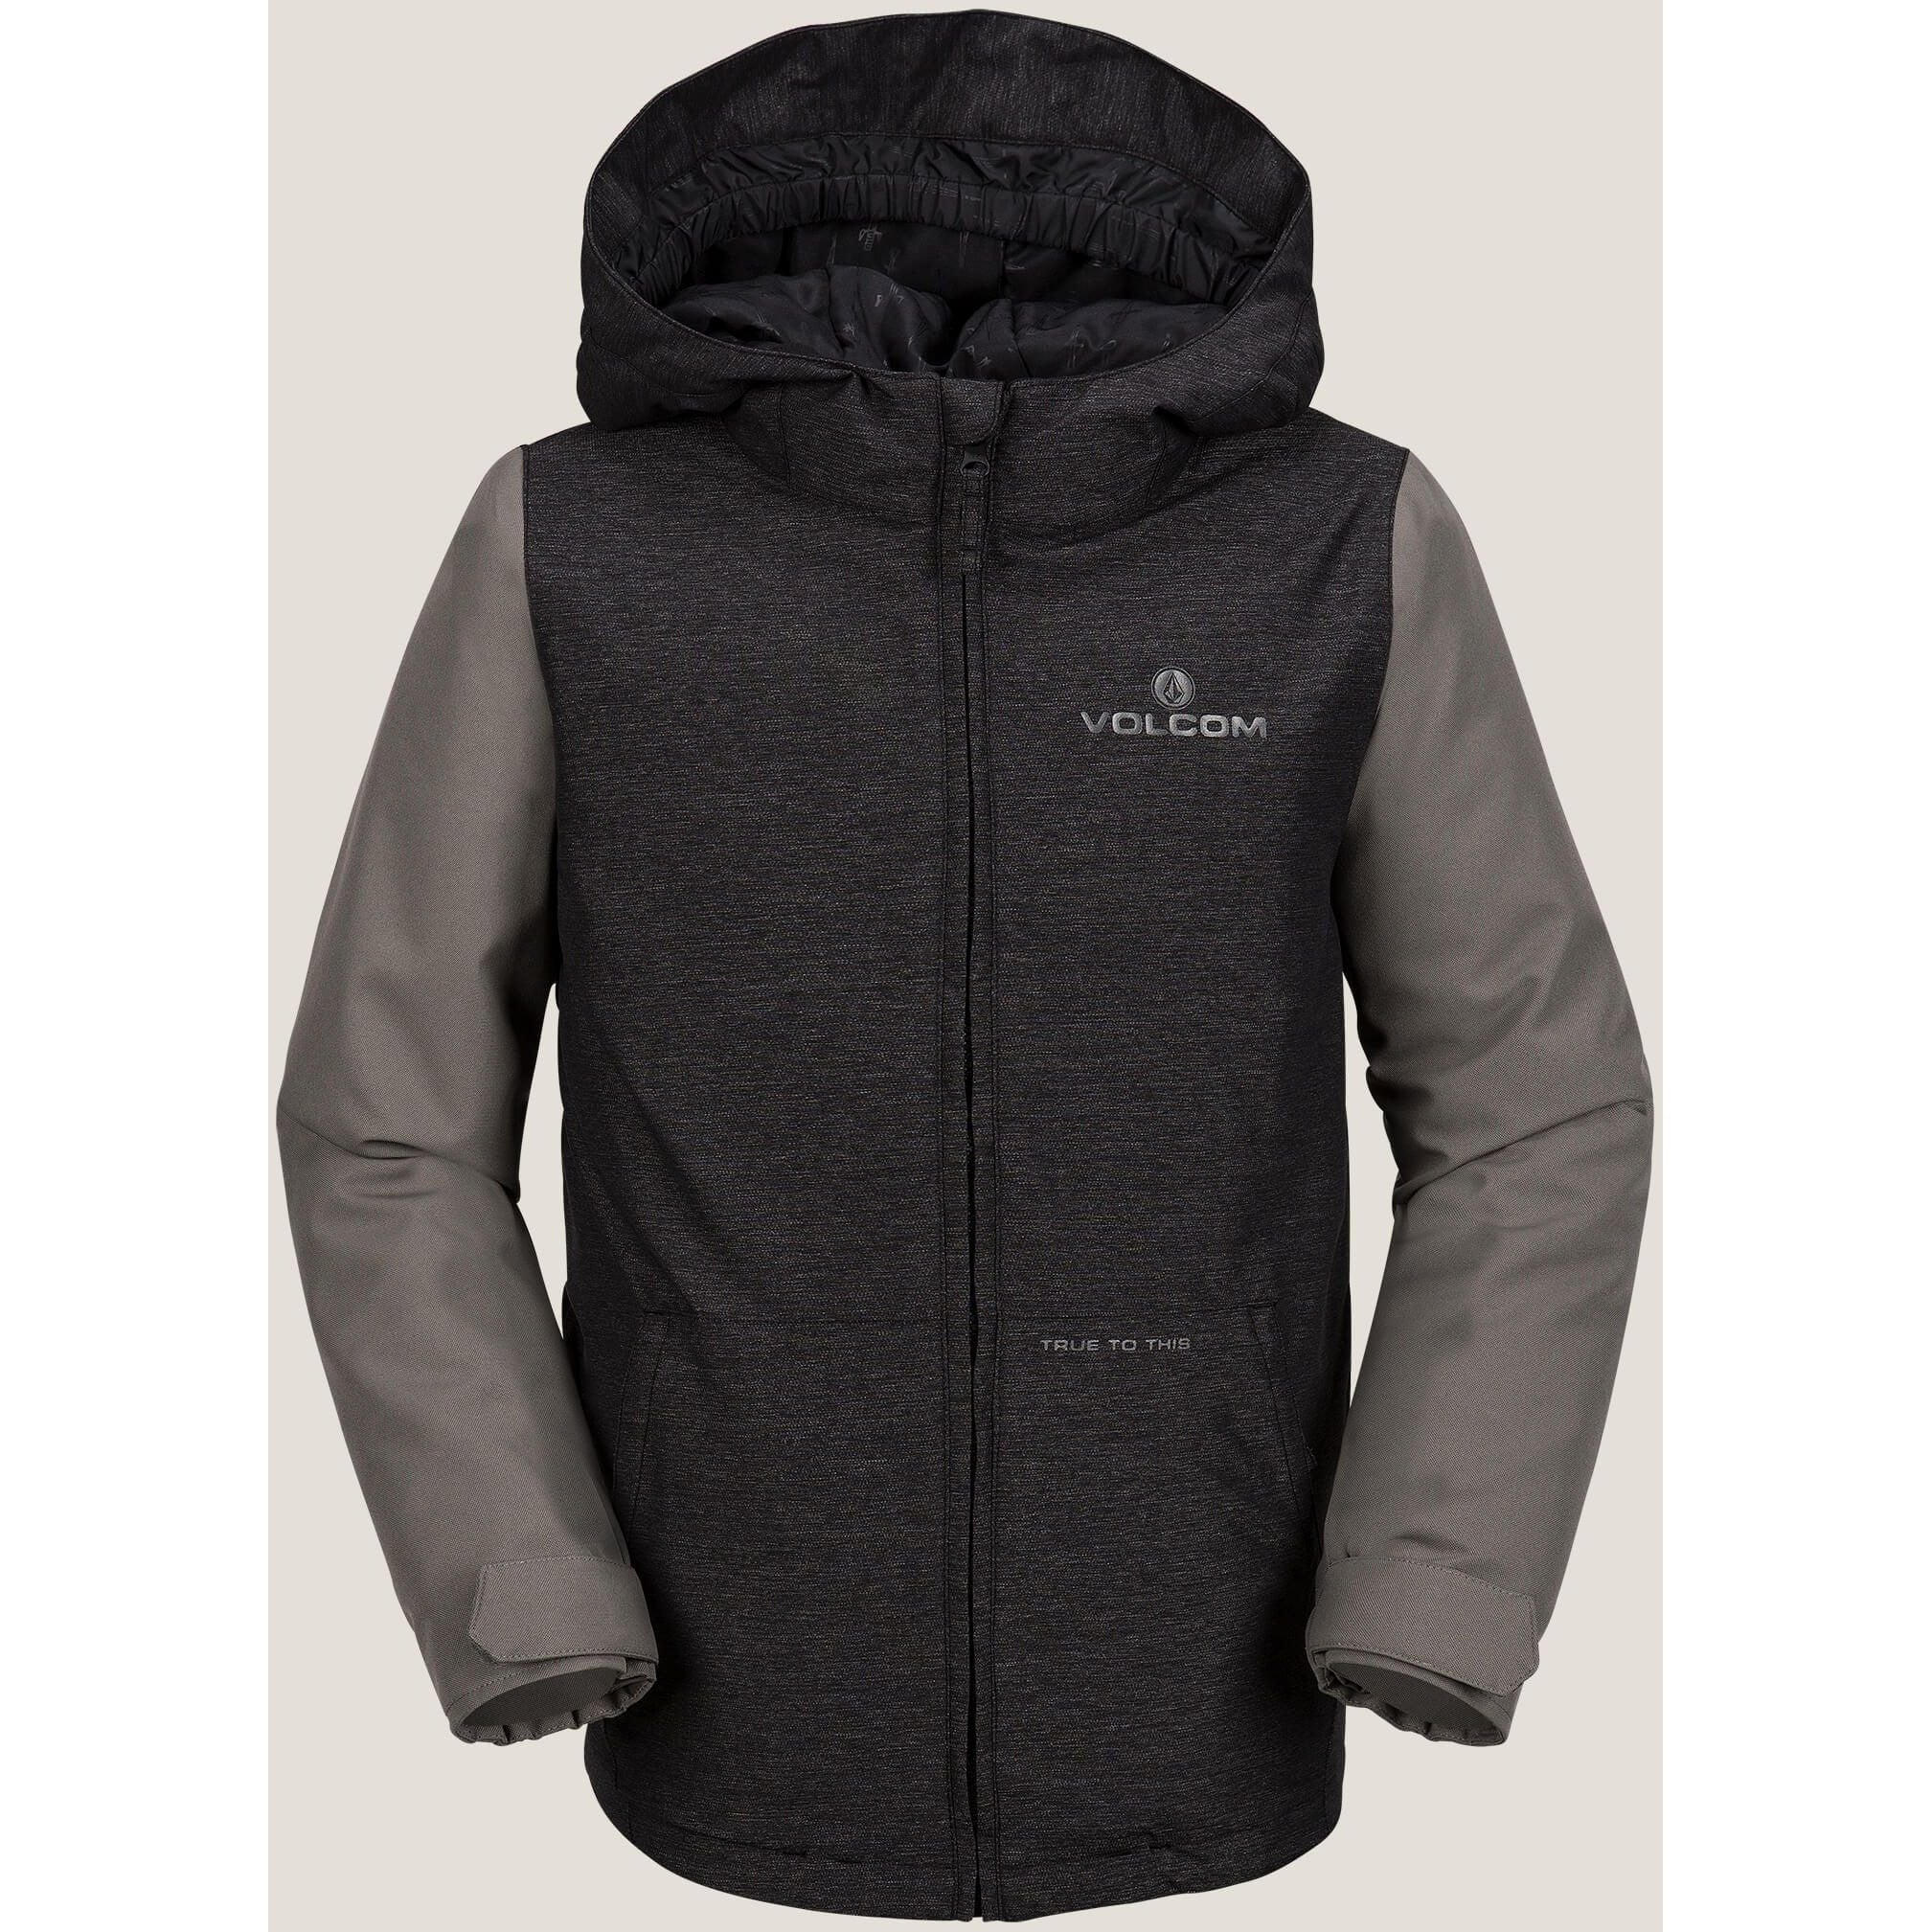 Volcom Selkirk Youth Snow Jacket - 88 Gear